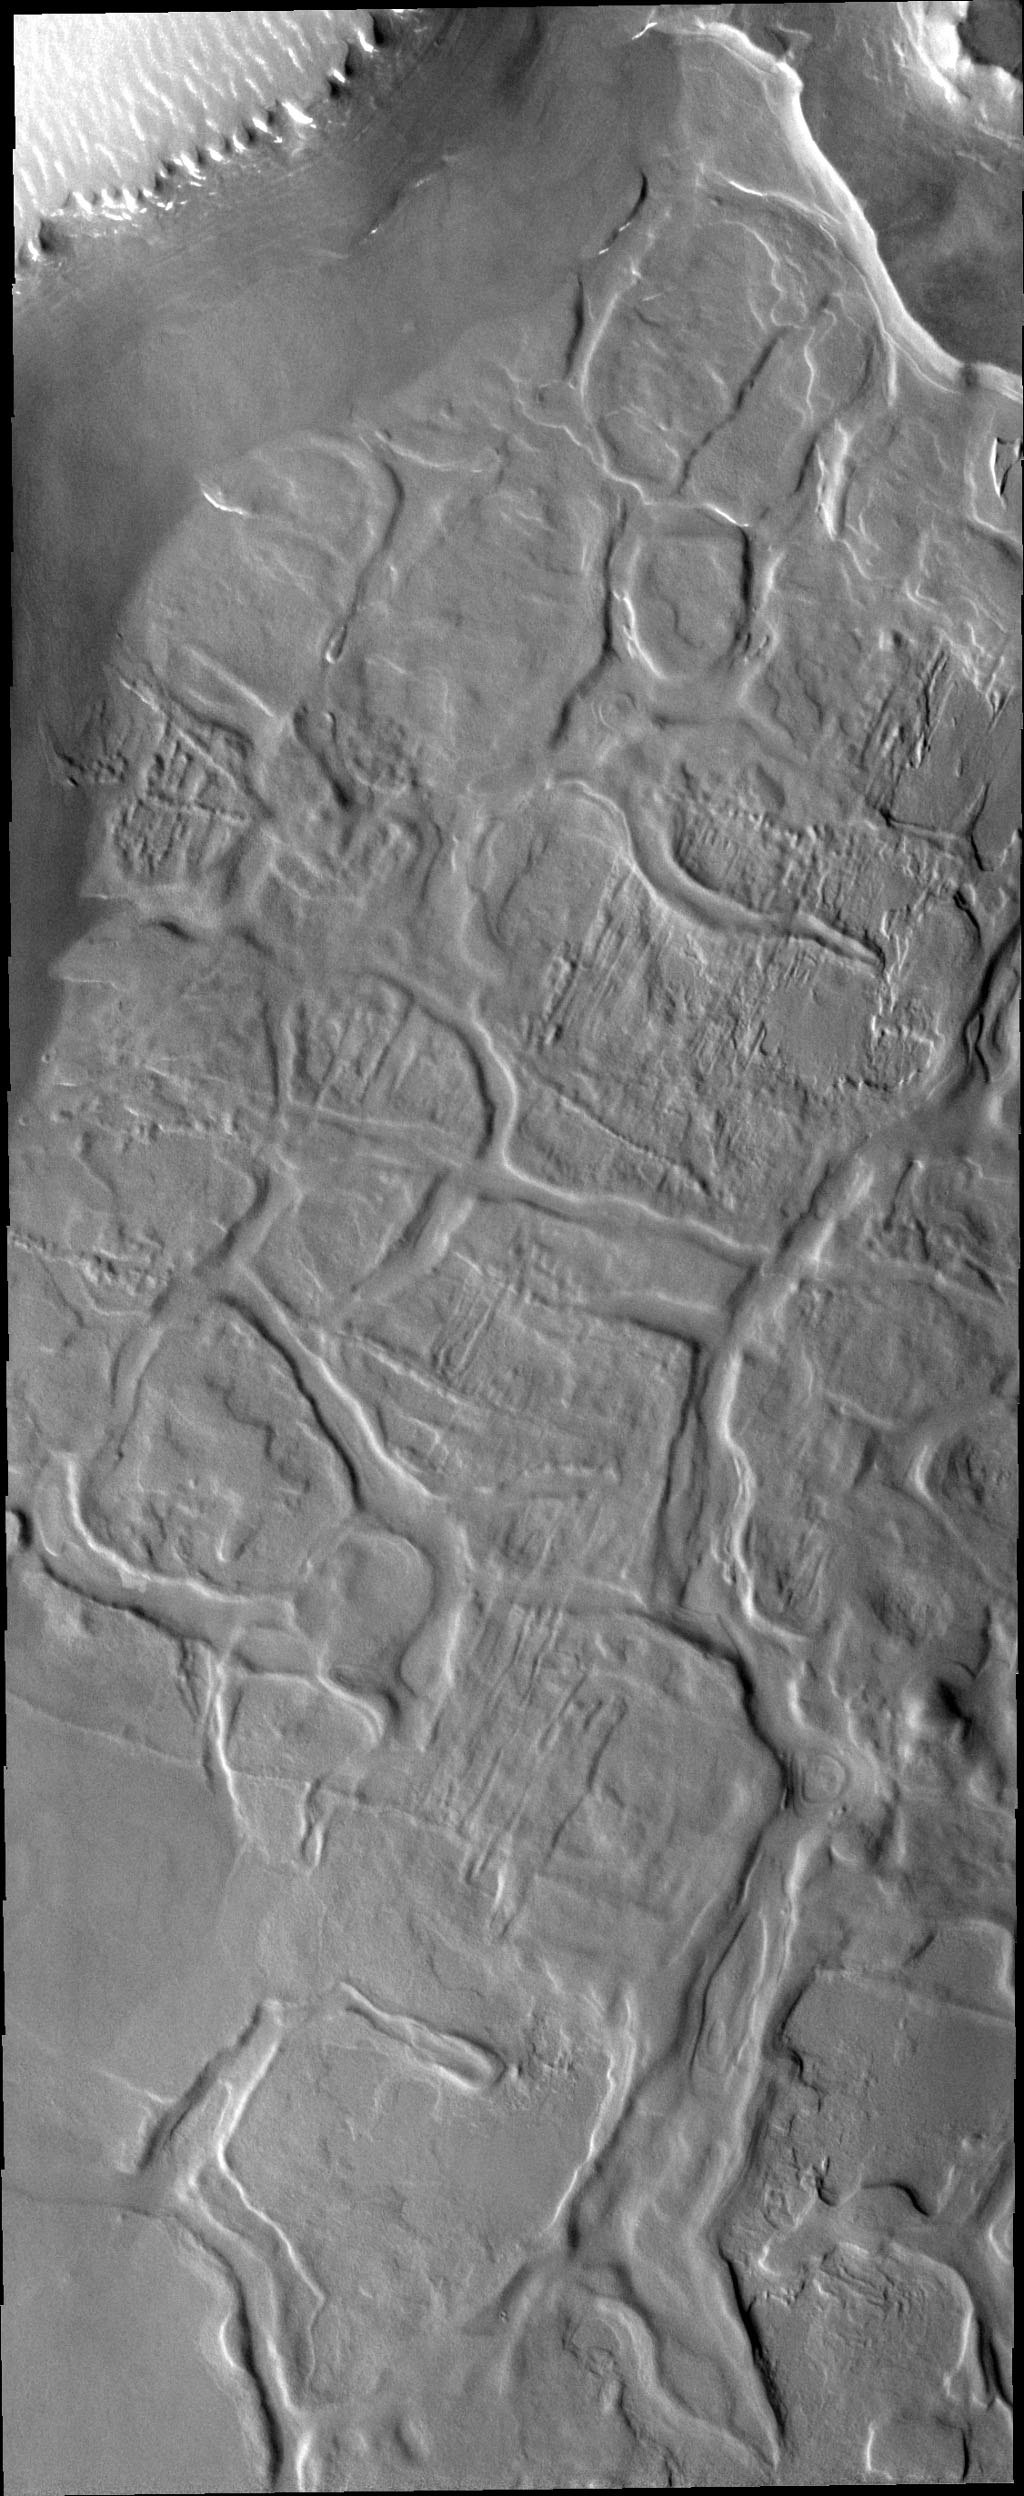 The dissected appearing surface in this image captured by NASA's Mars Odyssey spacecraft is called Hyperboreus Labyrinthus, located just south of Mars' north polar cap. The linear depressions are most likely caused by tectonic stress.